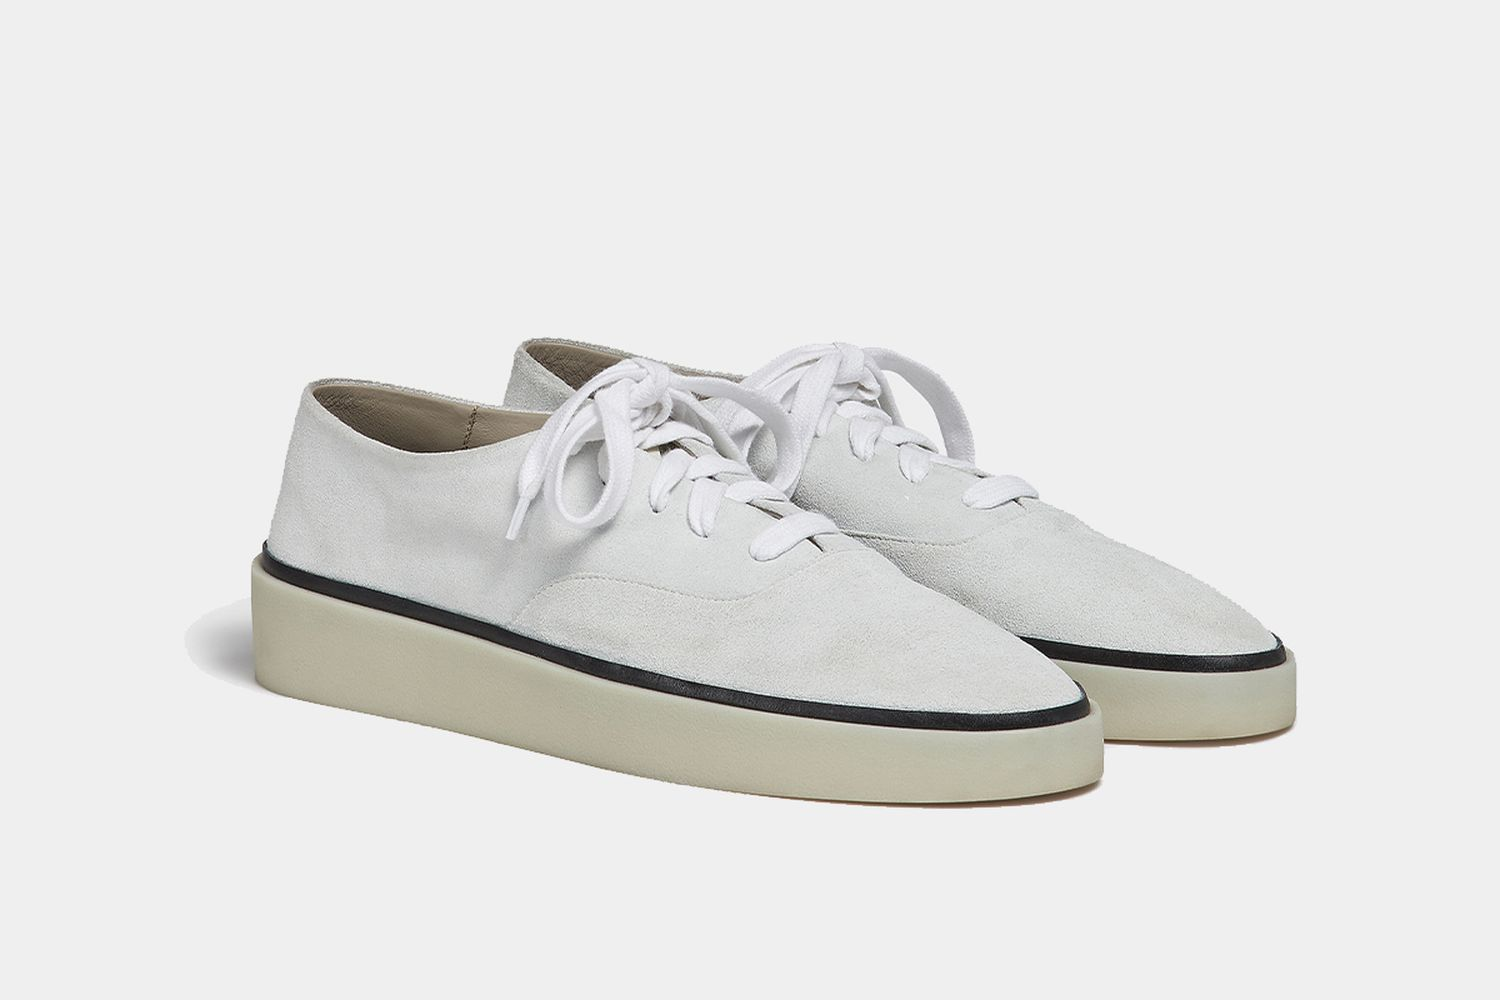 Fear of God Exclusively for Ermenegildo Zegna Suede Sneakers